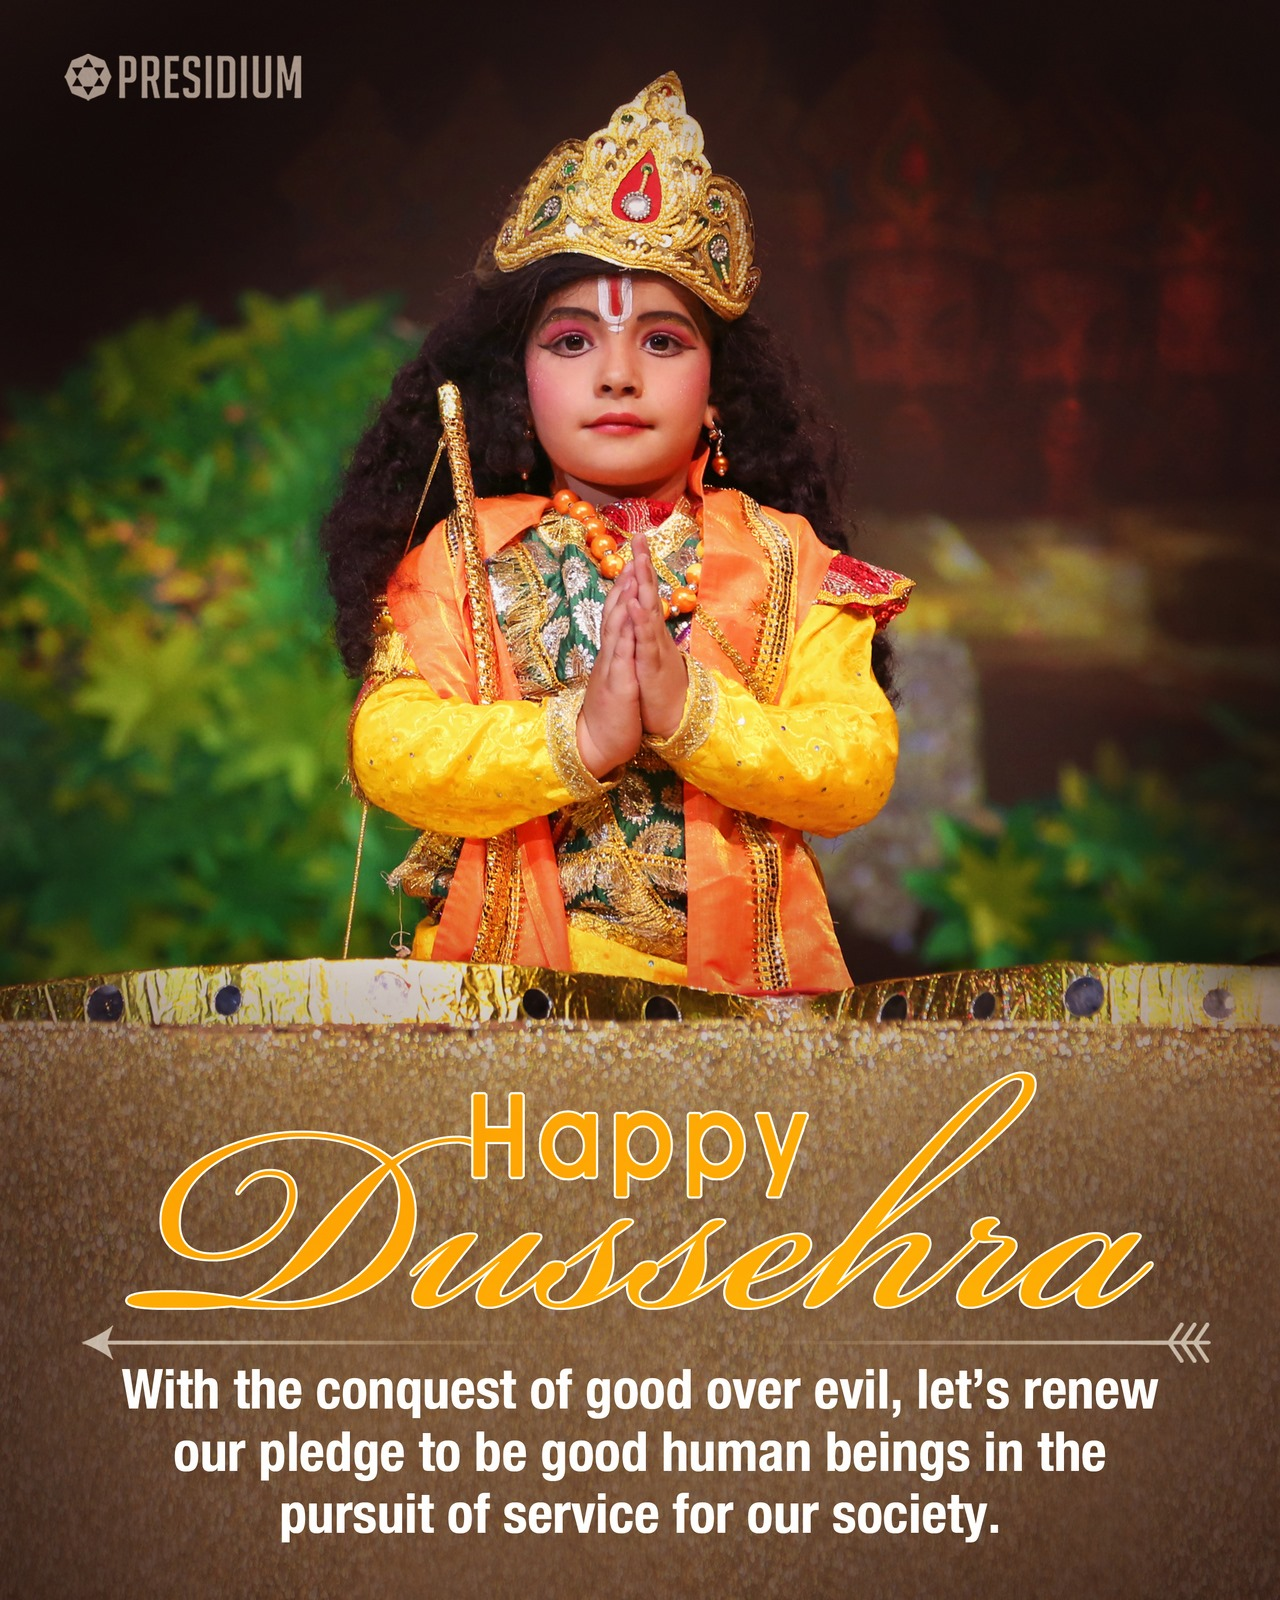 DUSSEHRA: CELEBRATING THE TRIUMPH OF GOOD OVER EVIL